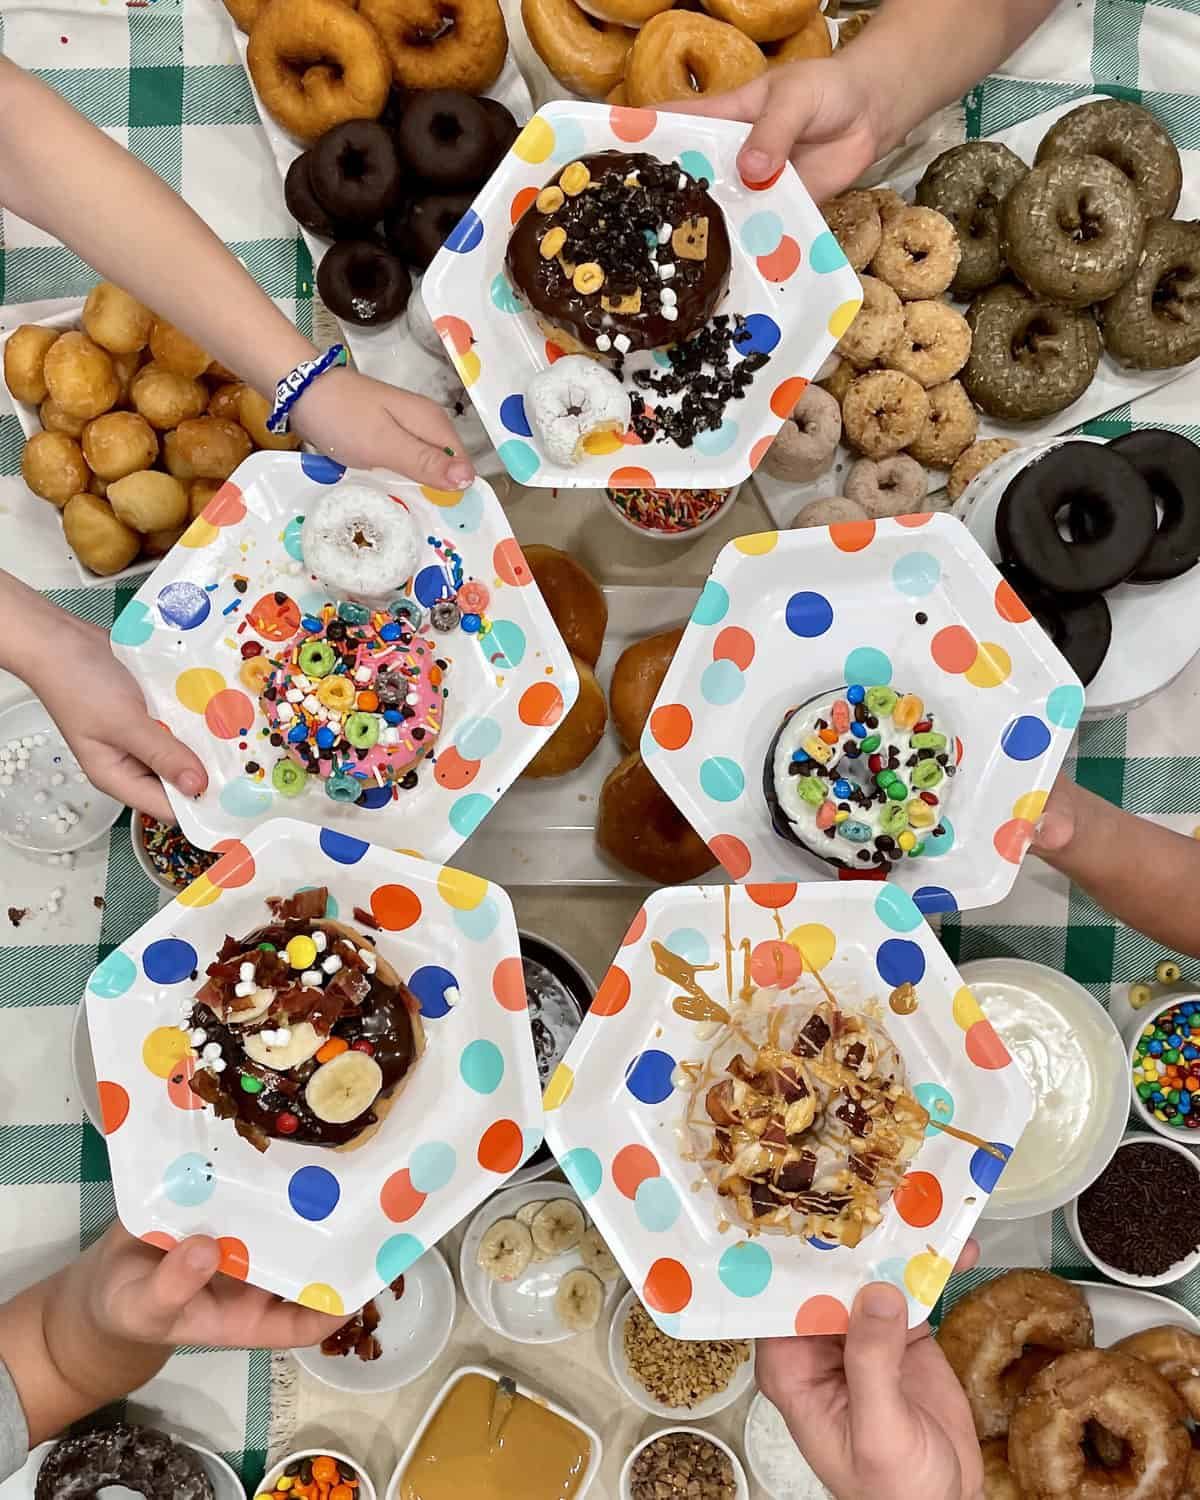 Decorate-Your-Own Donut Spread